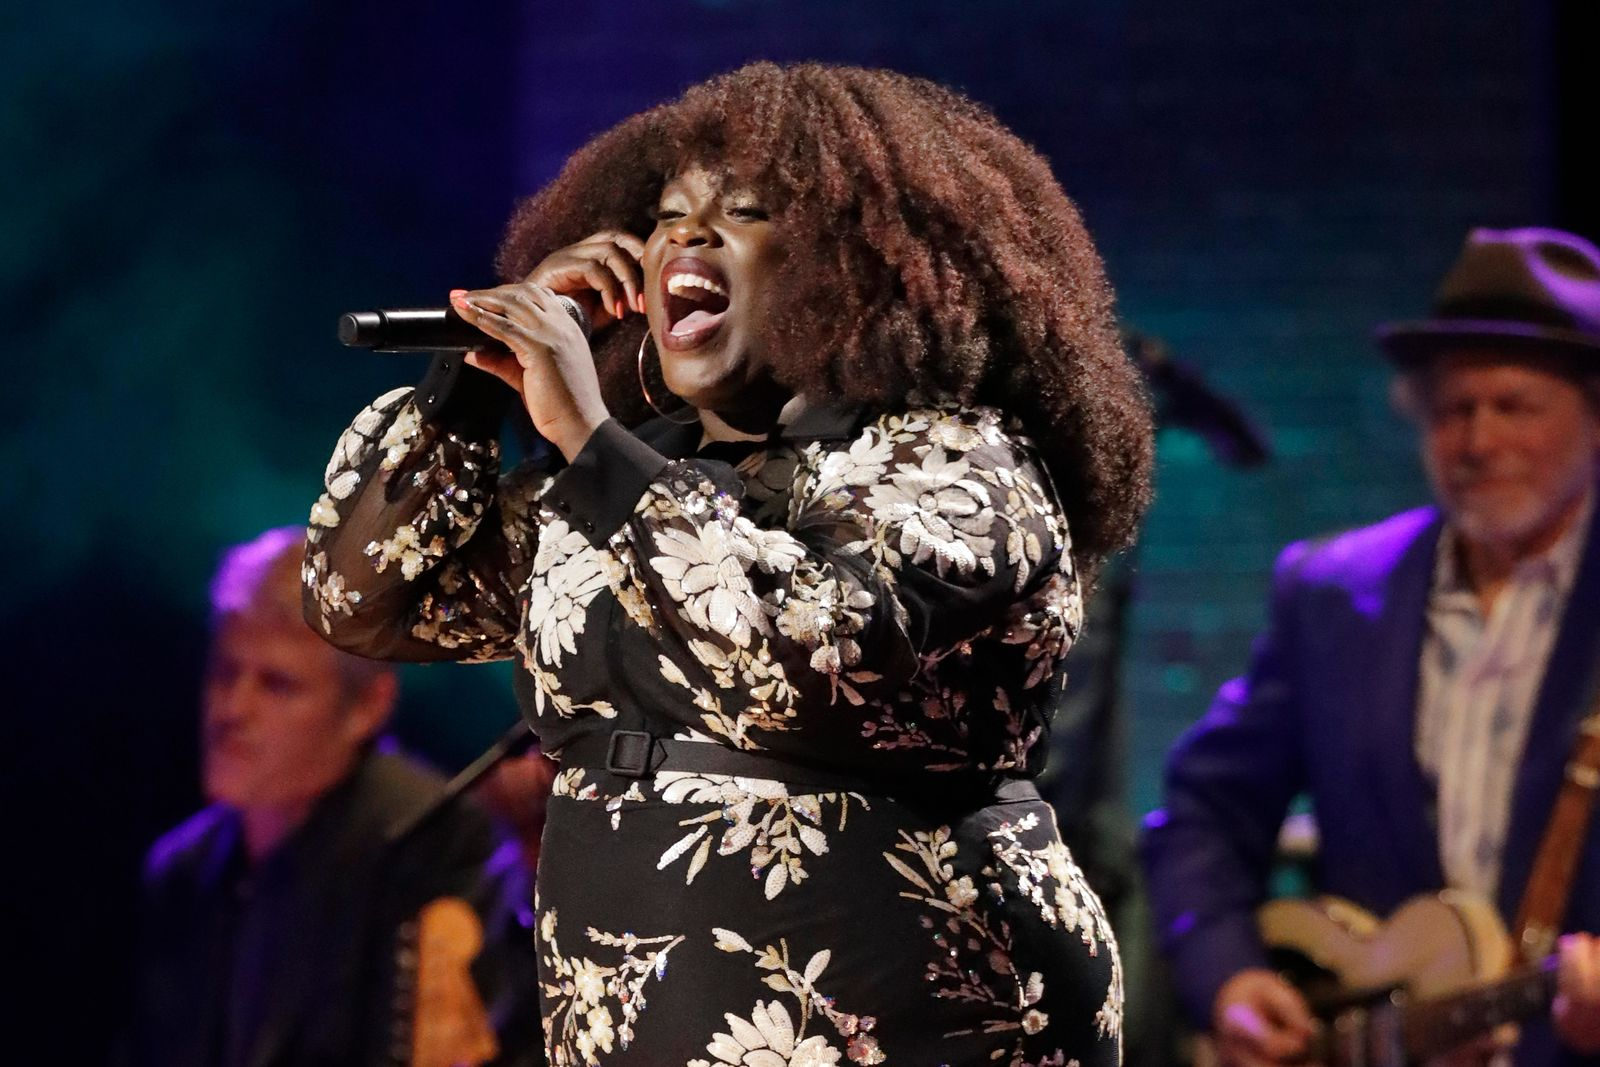 Yola performs during the Americana Honors & Awards show Wednesday, Sept. 11, 2019, in Nashville, Tenn. (AP Photo/Wade Payne)